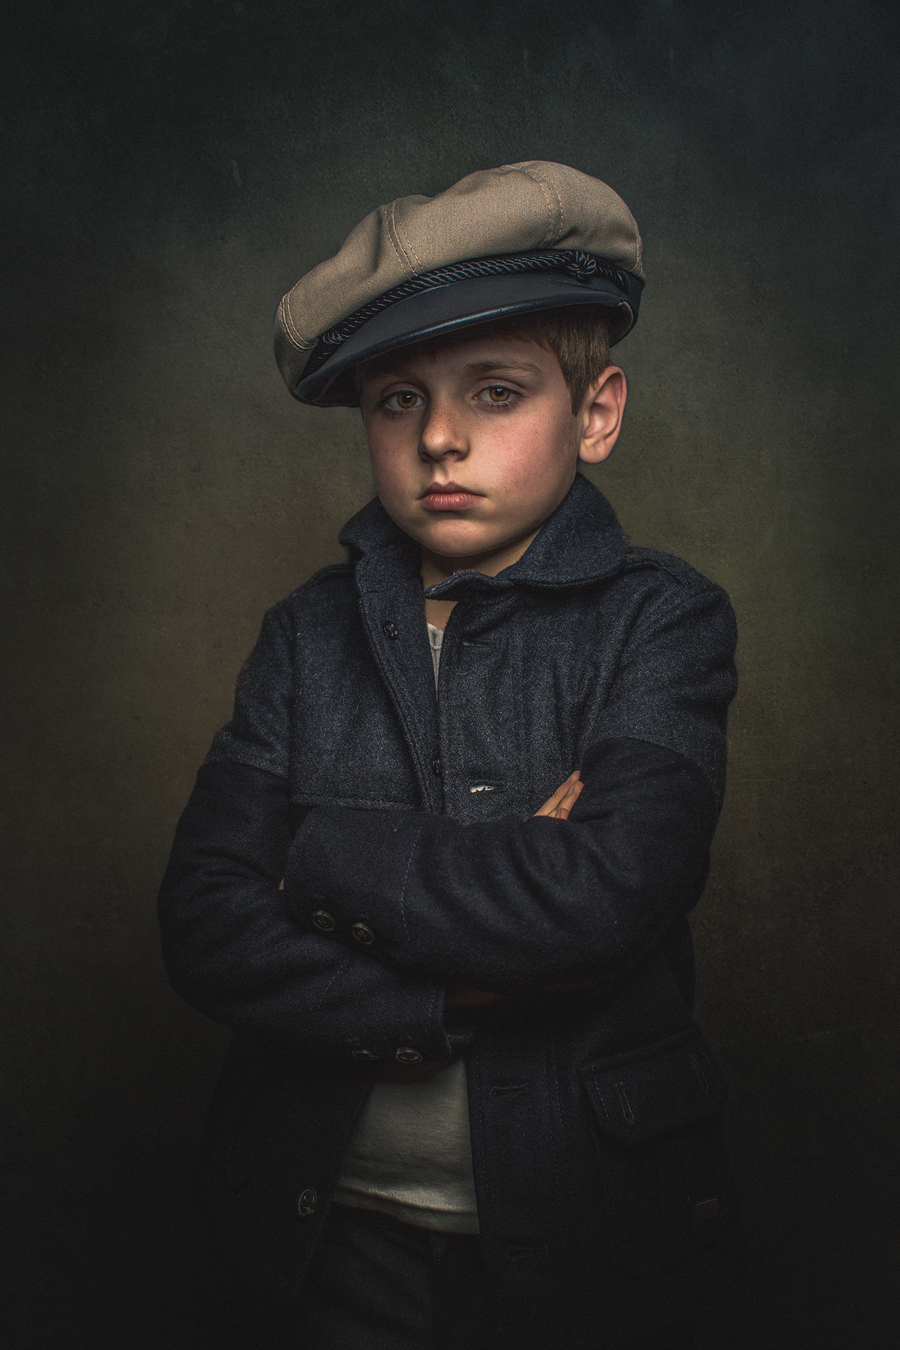 Street Urchin / Photography by Jess Middlebrook / Uploaded 14th May 2019 @ 10:45 AM